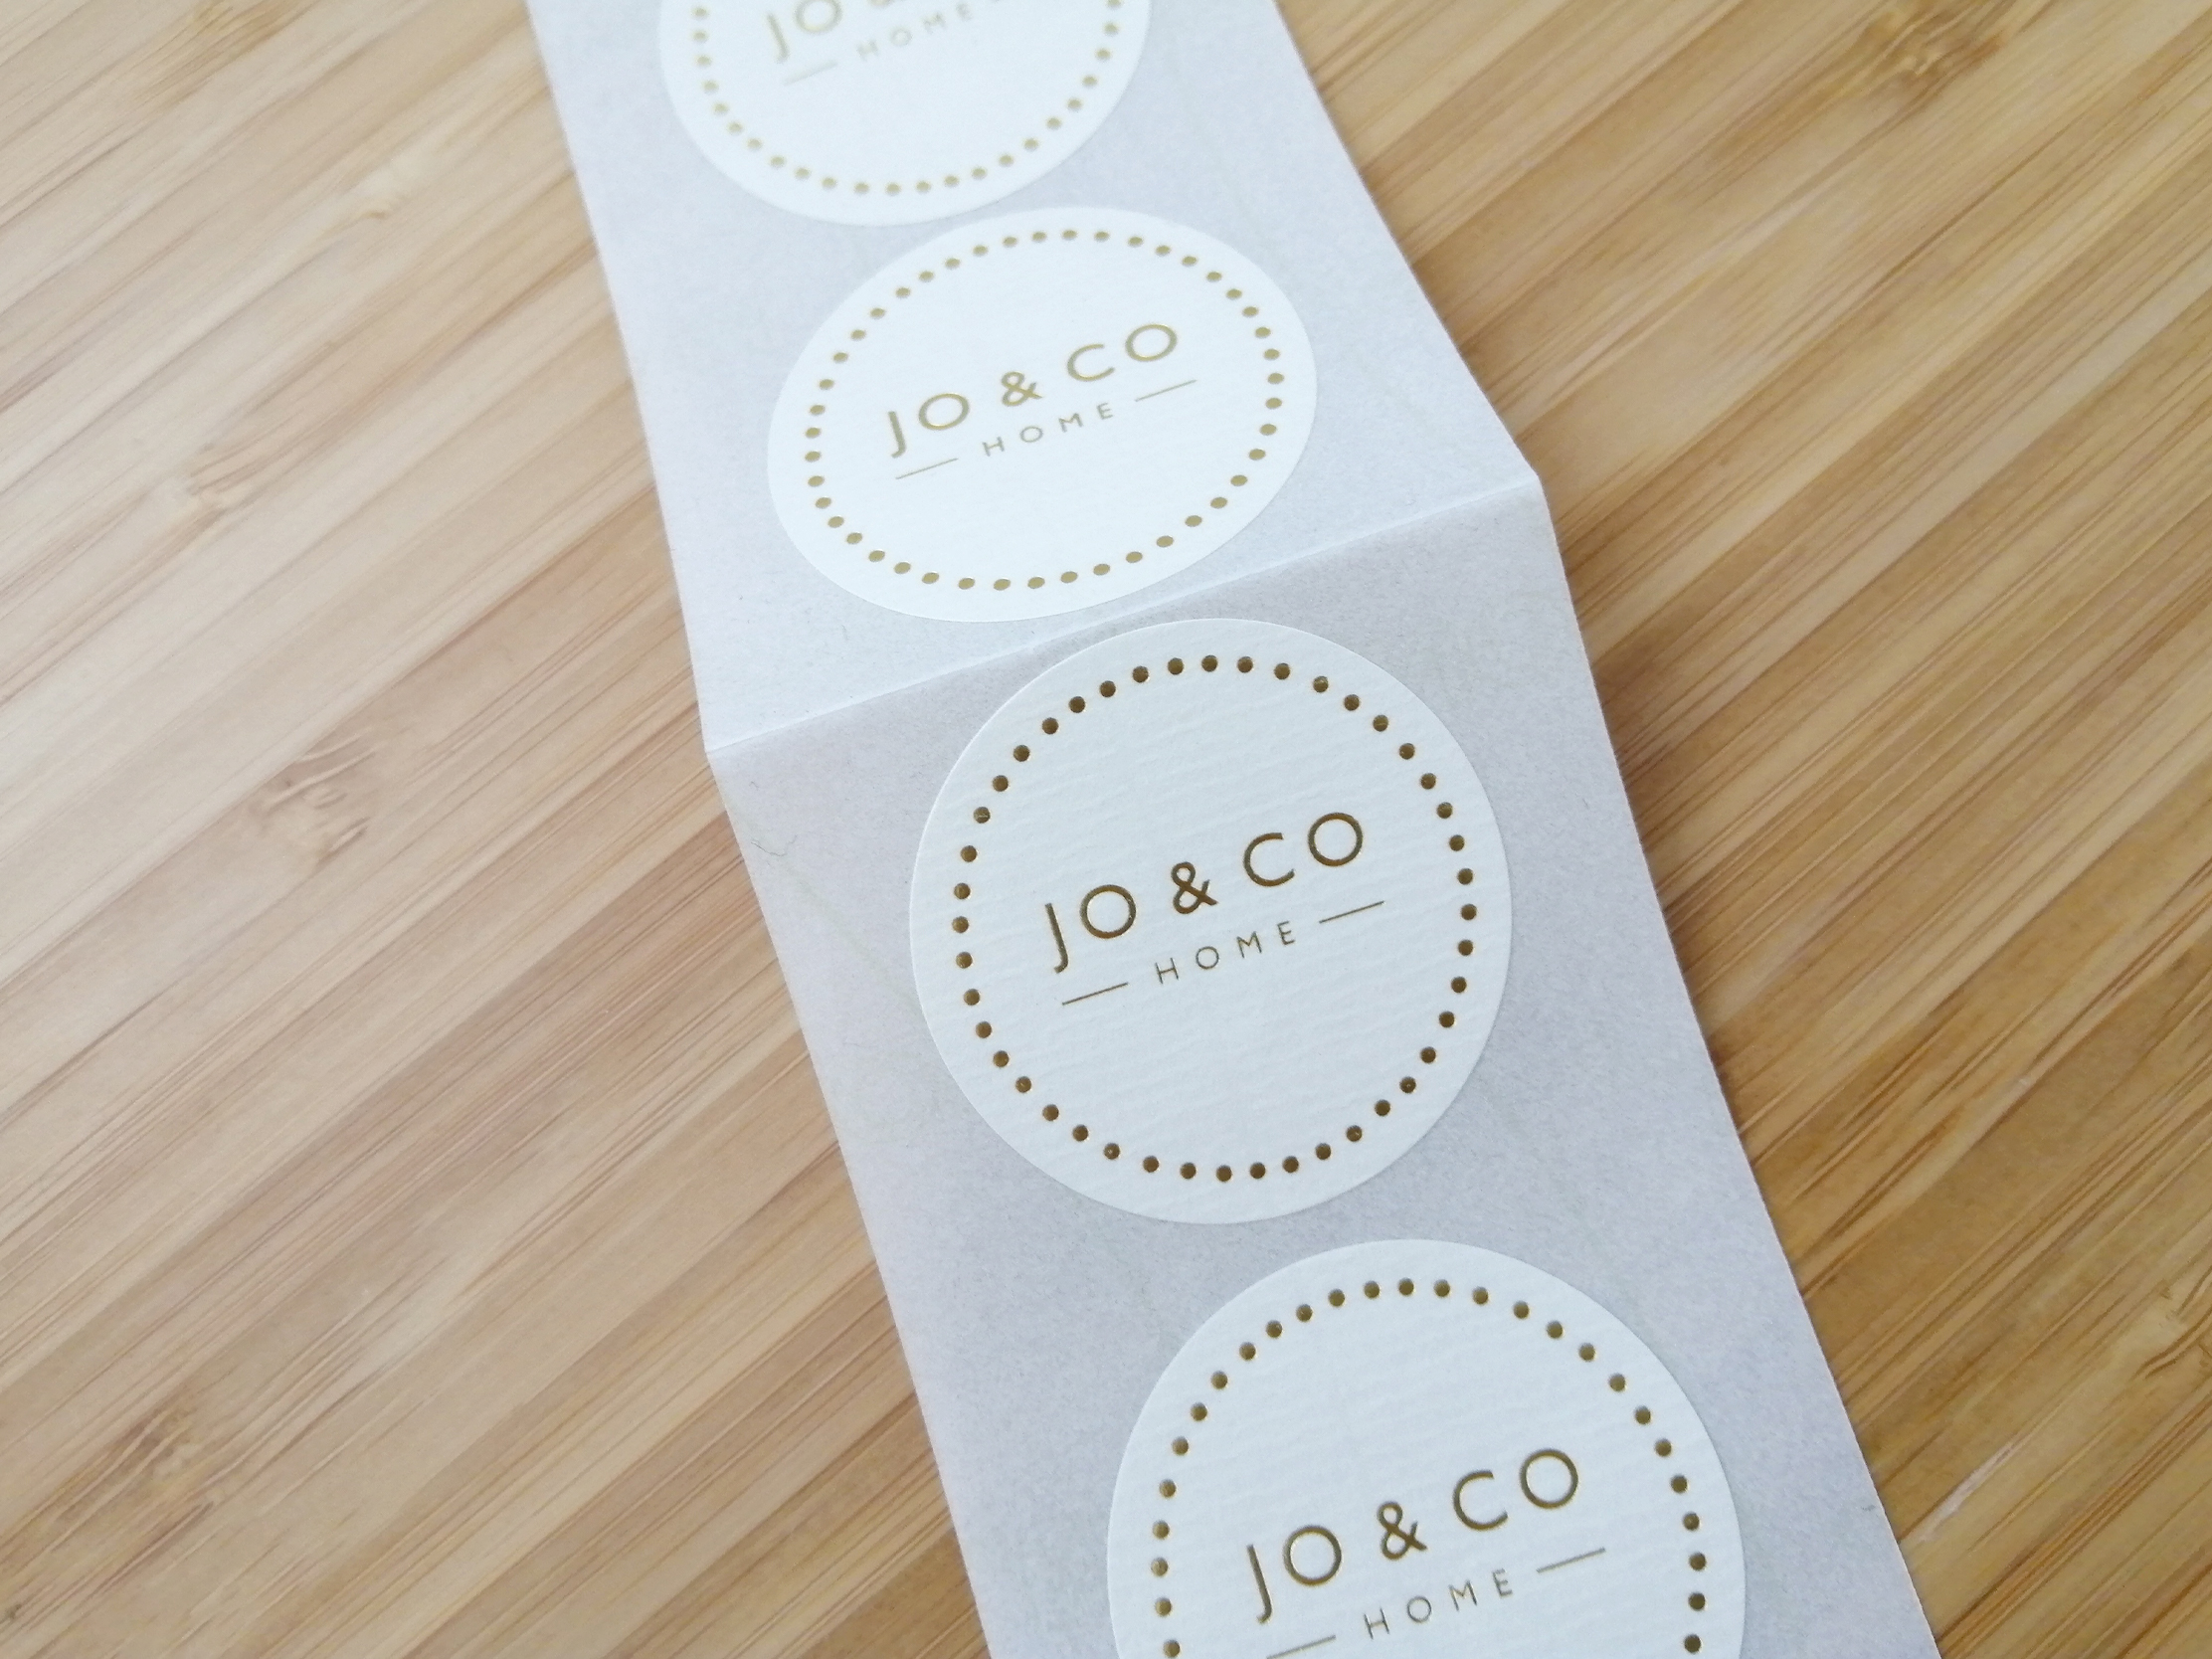 Jo & Co gold foil stickers